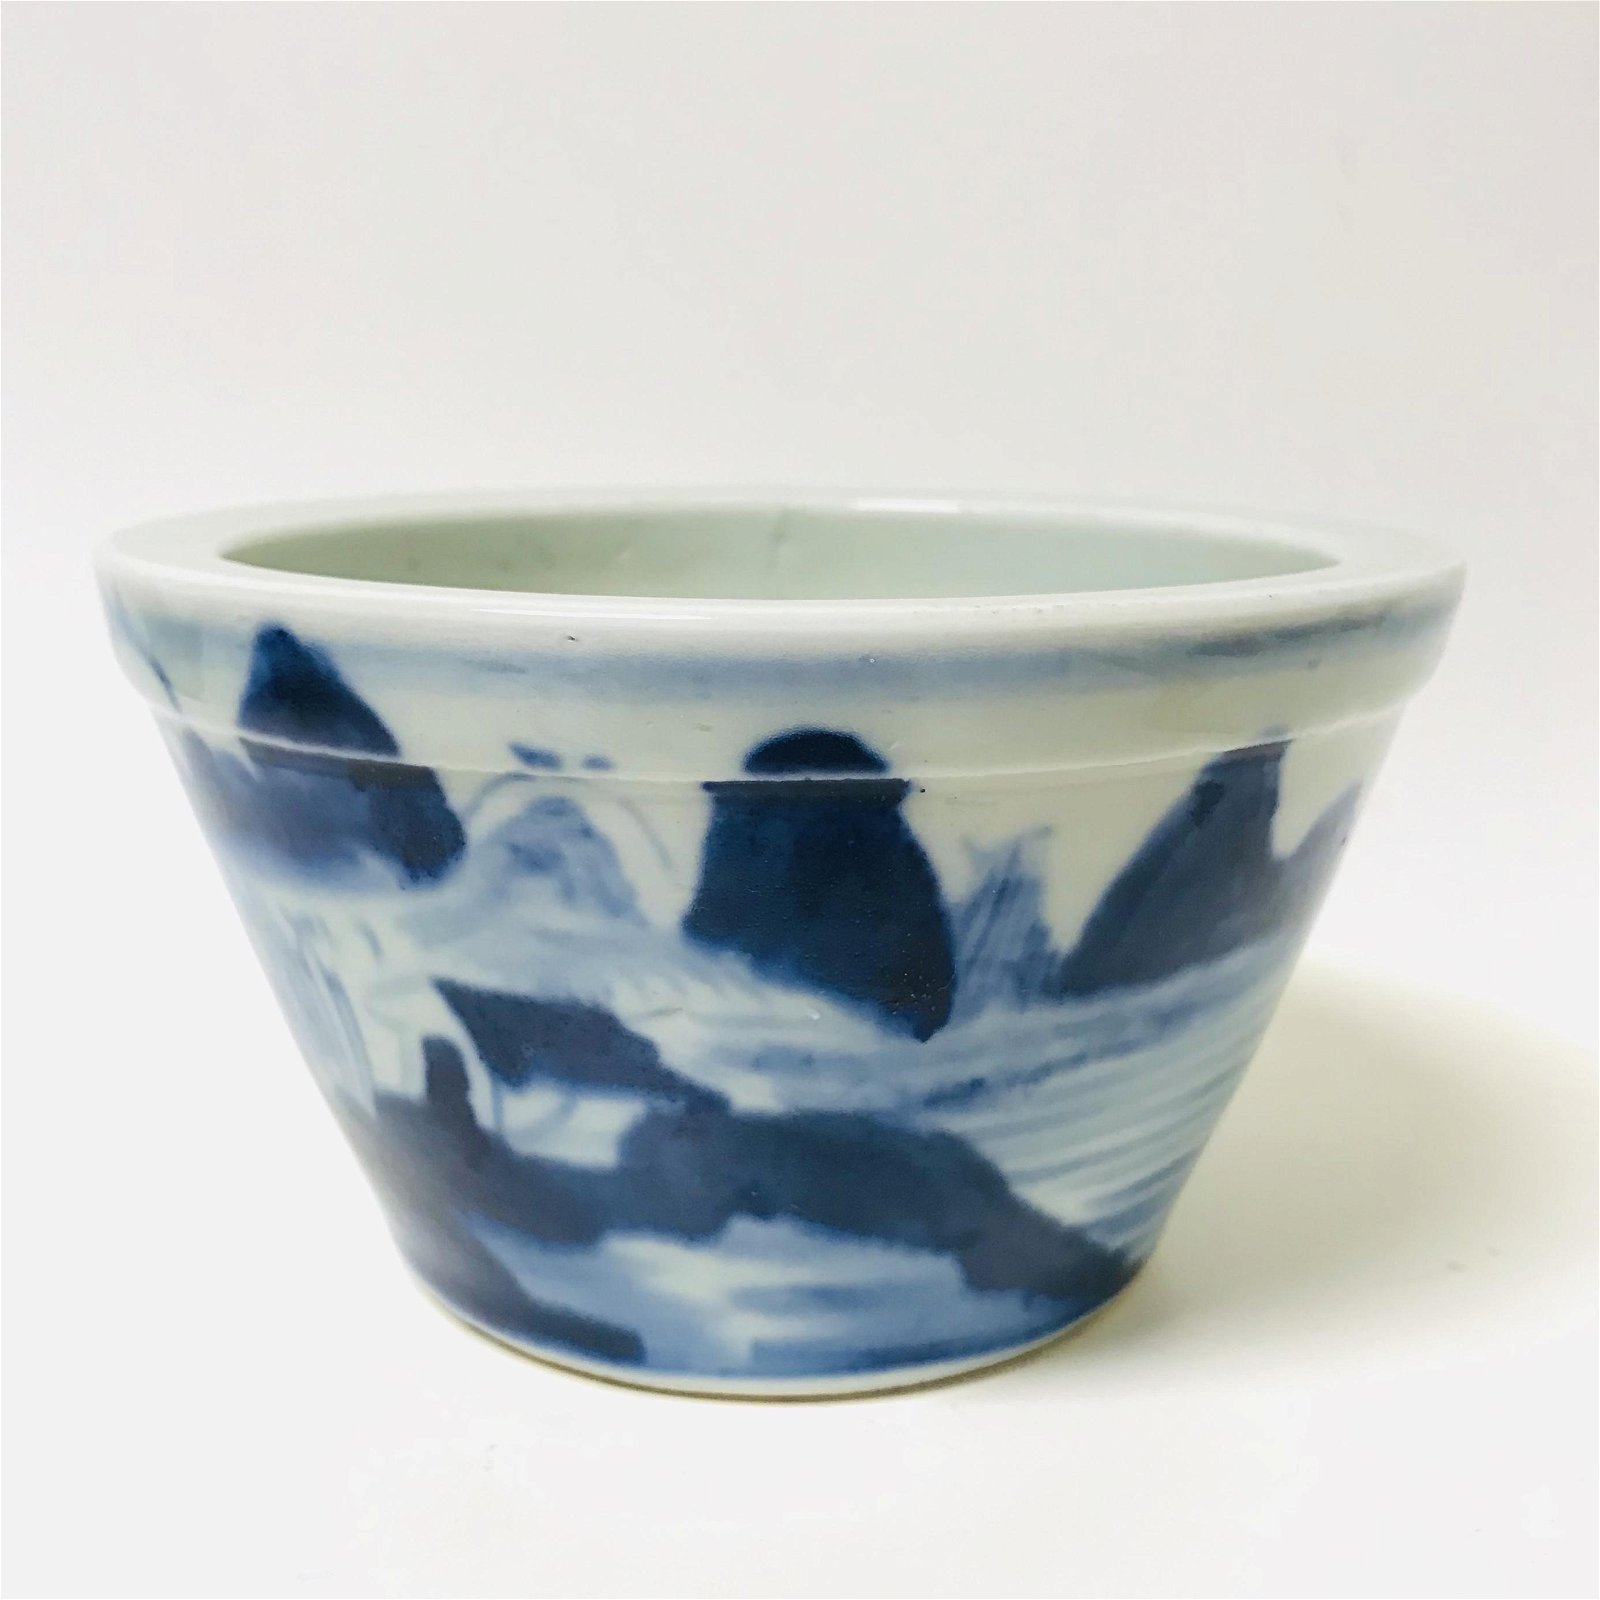 Qing dynasty blue and white porcelain, painting